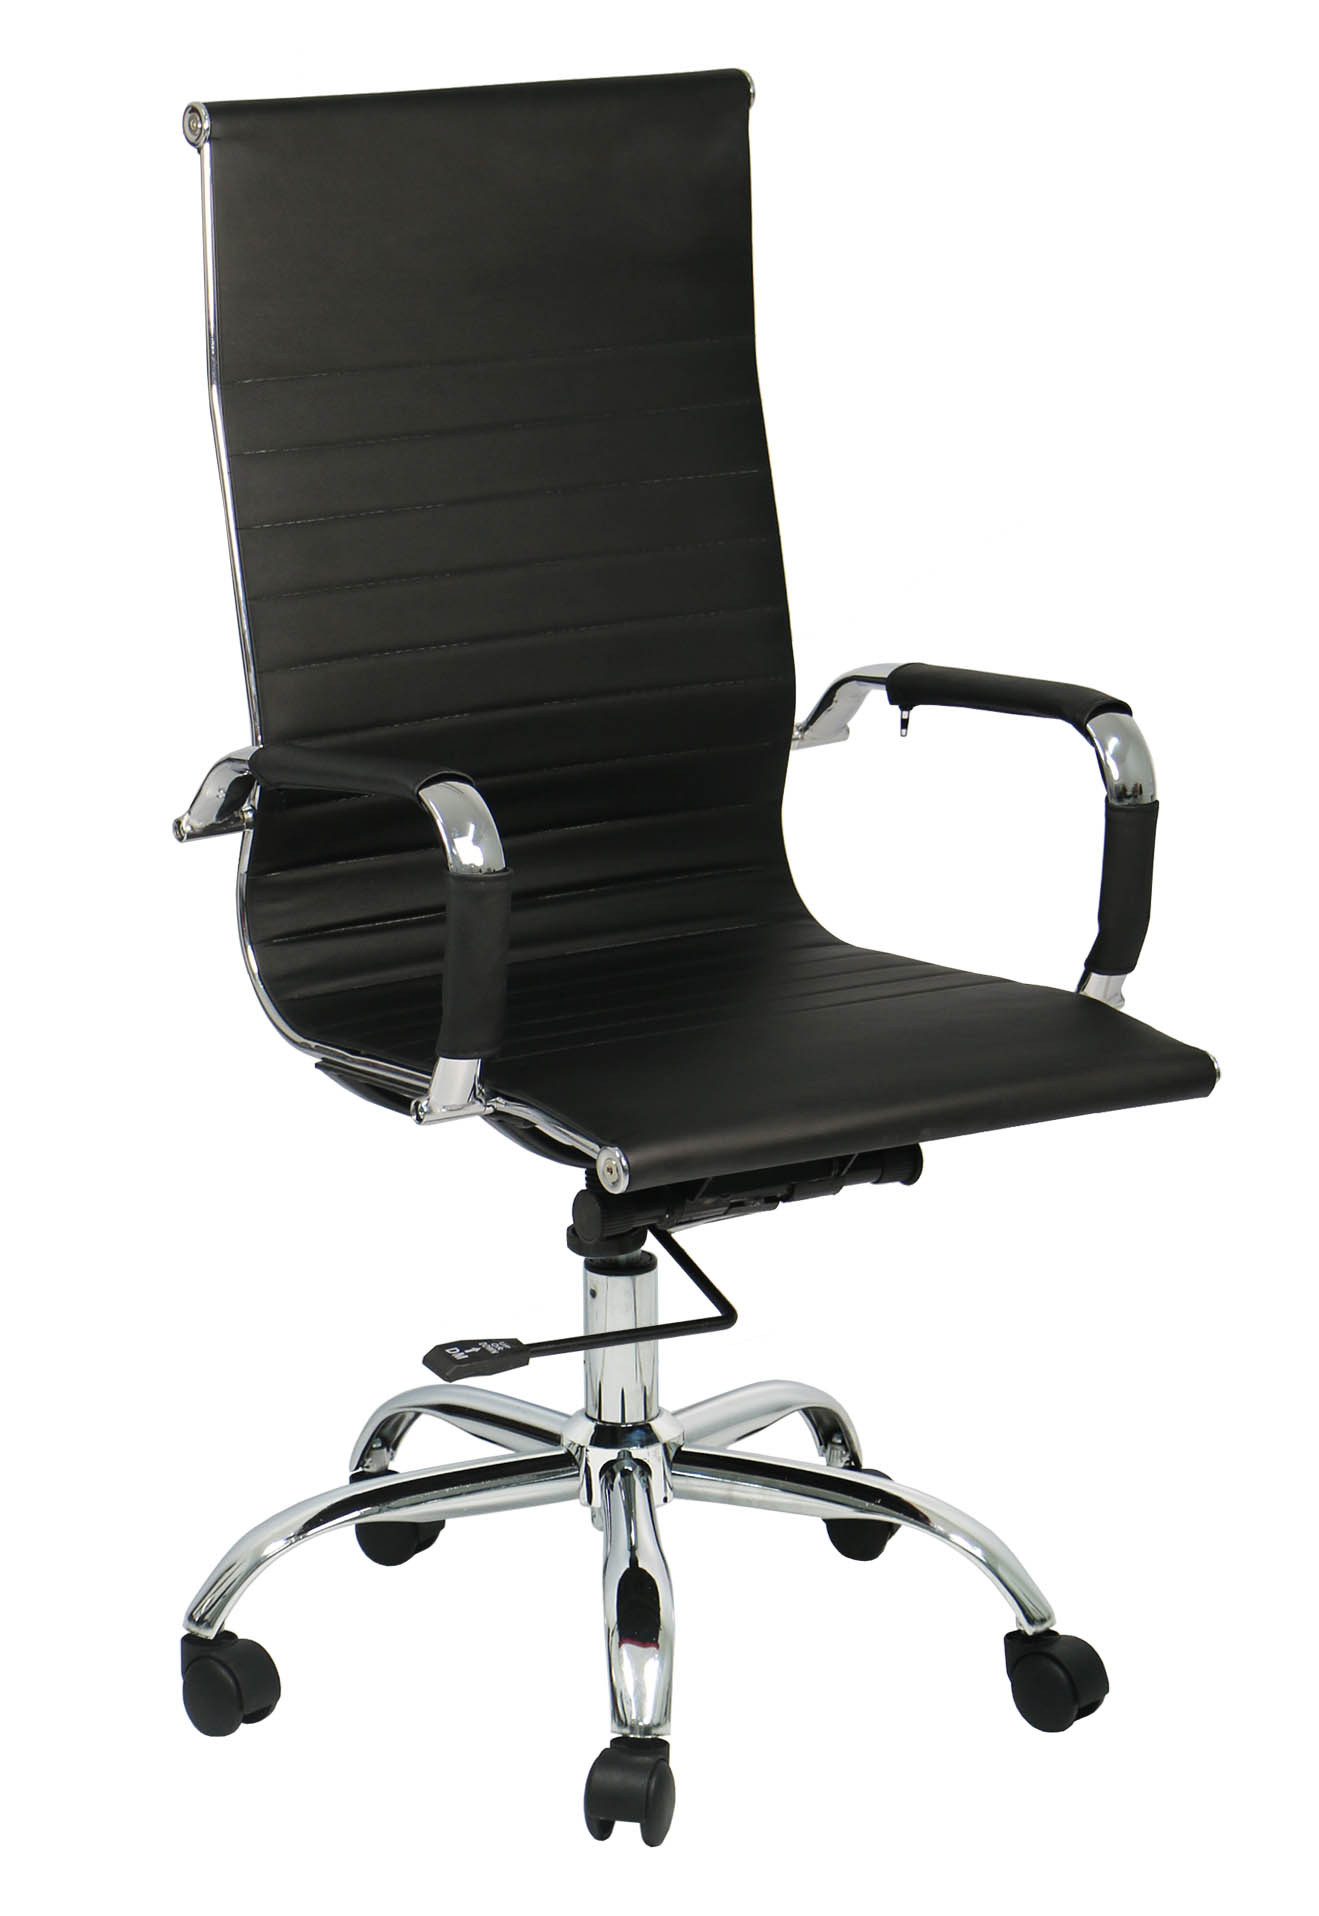 eames management chair replica check now blog. Black Bedroom Furniture Sets. Home Design Ideas